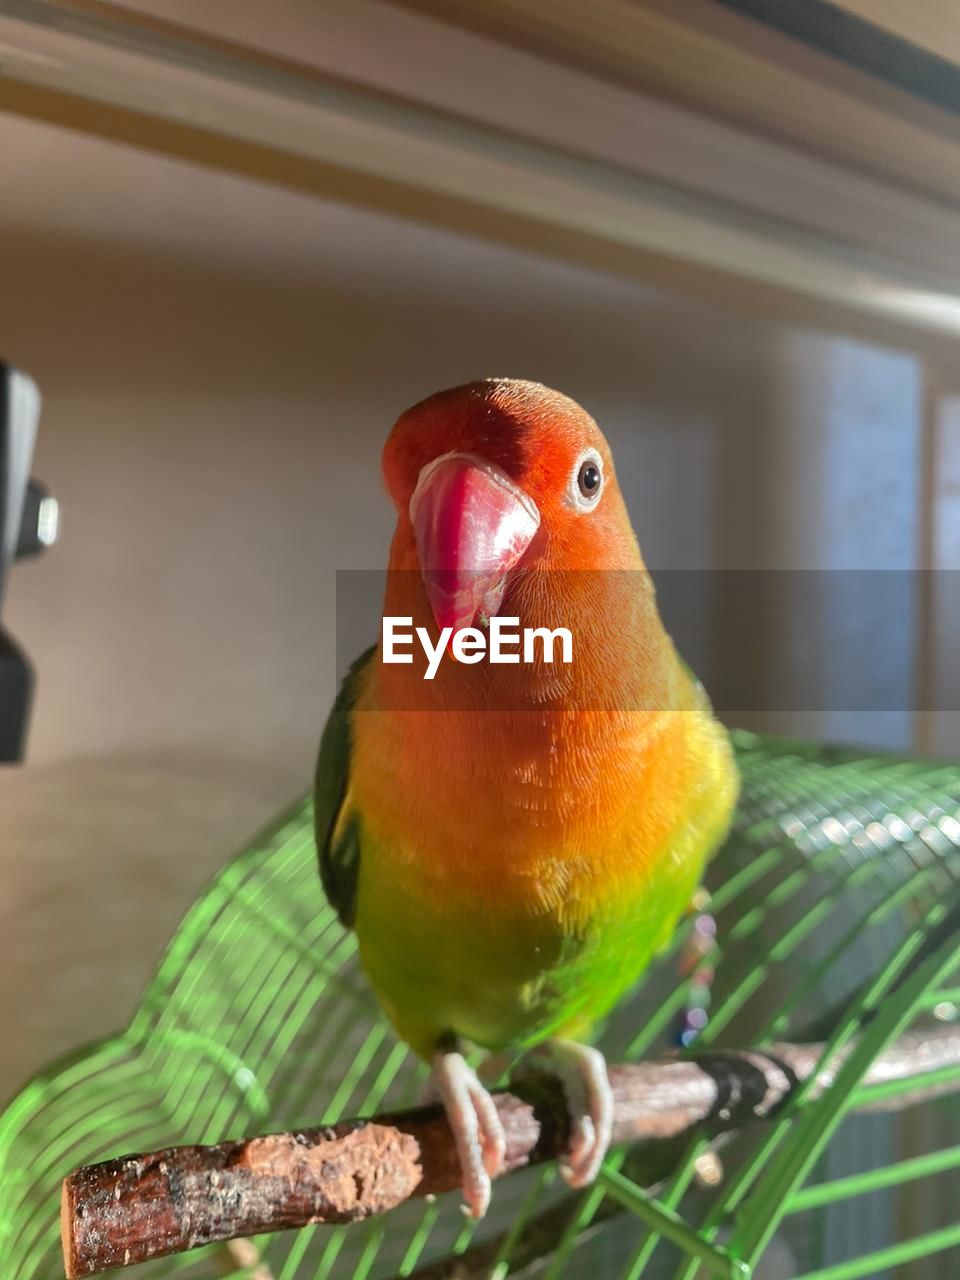 Marti Animal Themes Animal Vertebrate Bird One Animal Animal Wildlife Animals In The Wild Parrot Close-up Perching Parakeet No People Focus On Foreground Indoors  Beak Cage Domestic Pets Animals In Captivity Front View